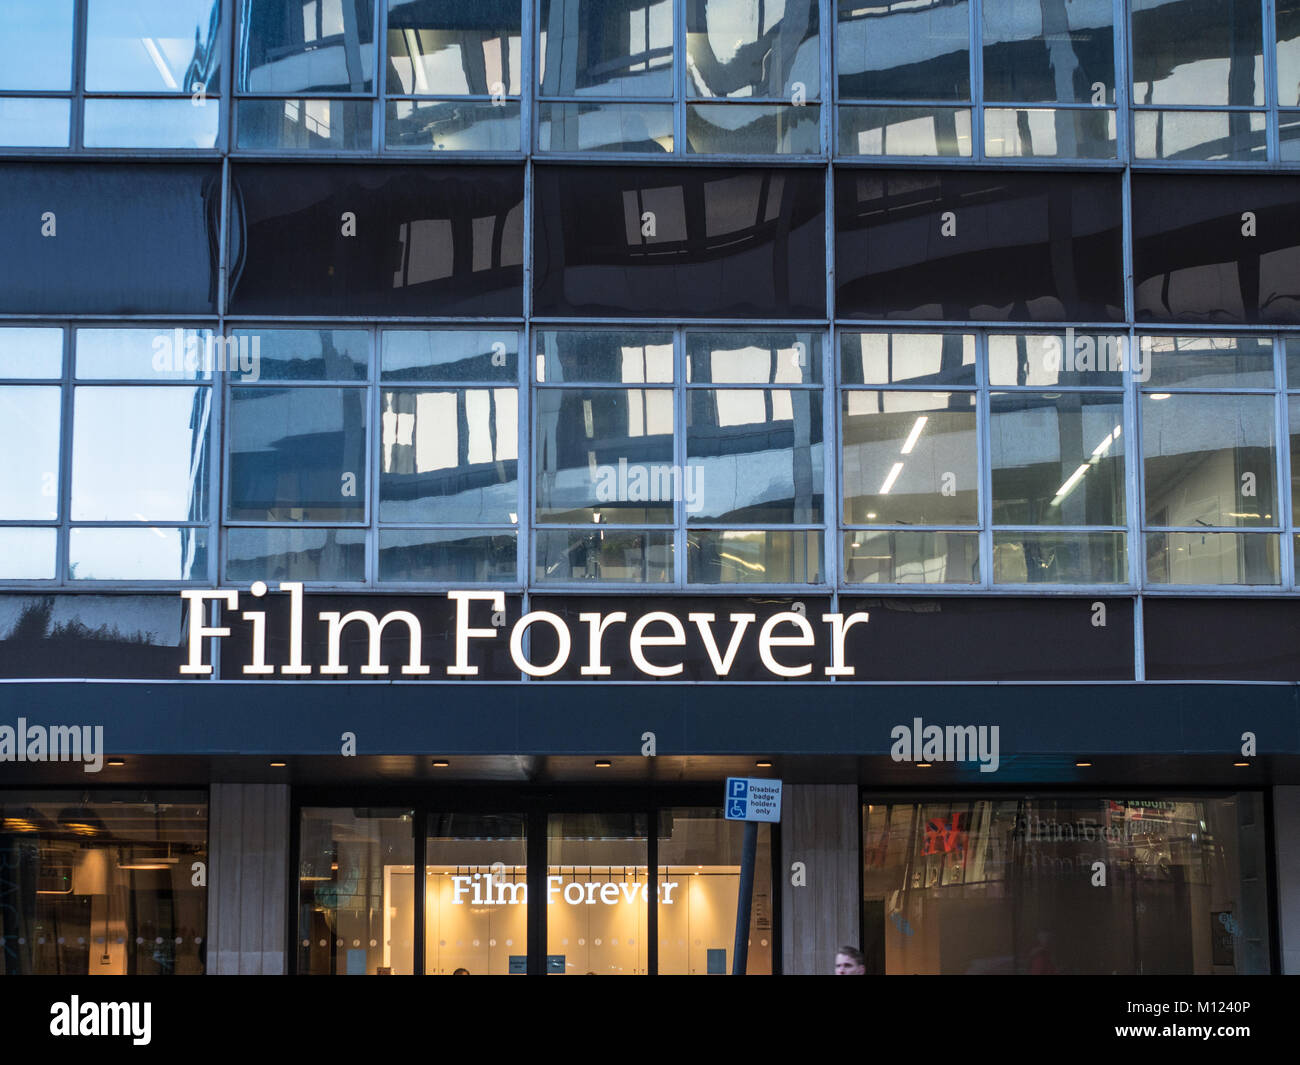 BFI Stephen Street Offices in London - British Film Institute screening and meeting rooms in central London UK - Stock Image